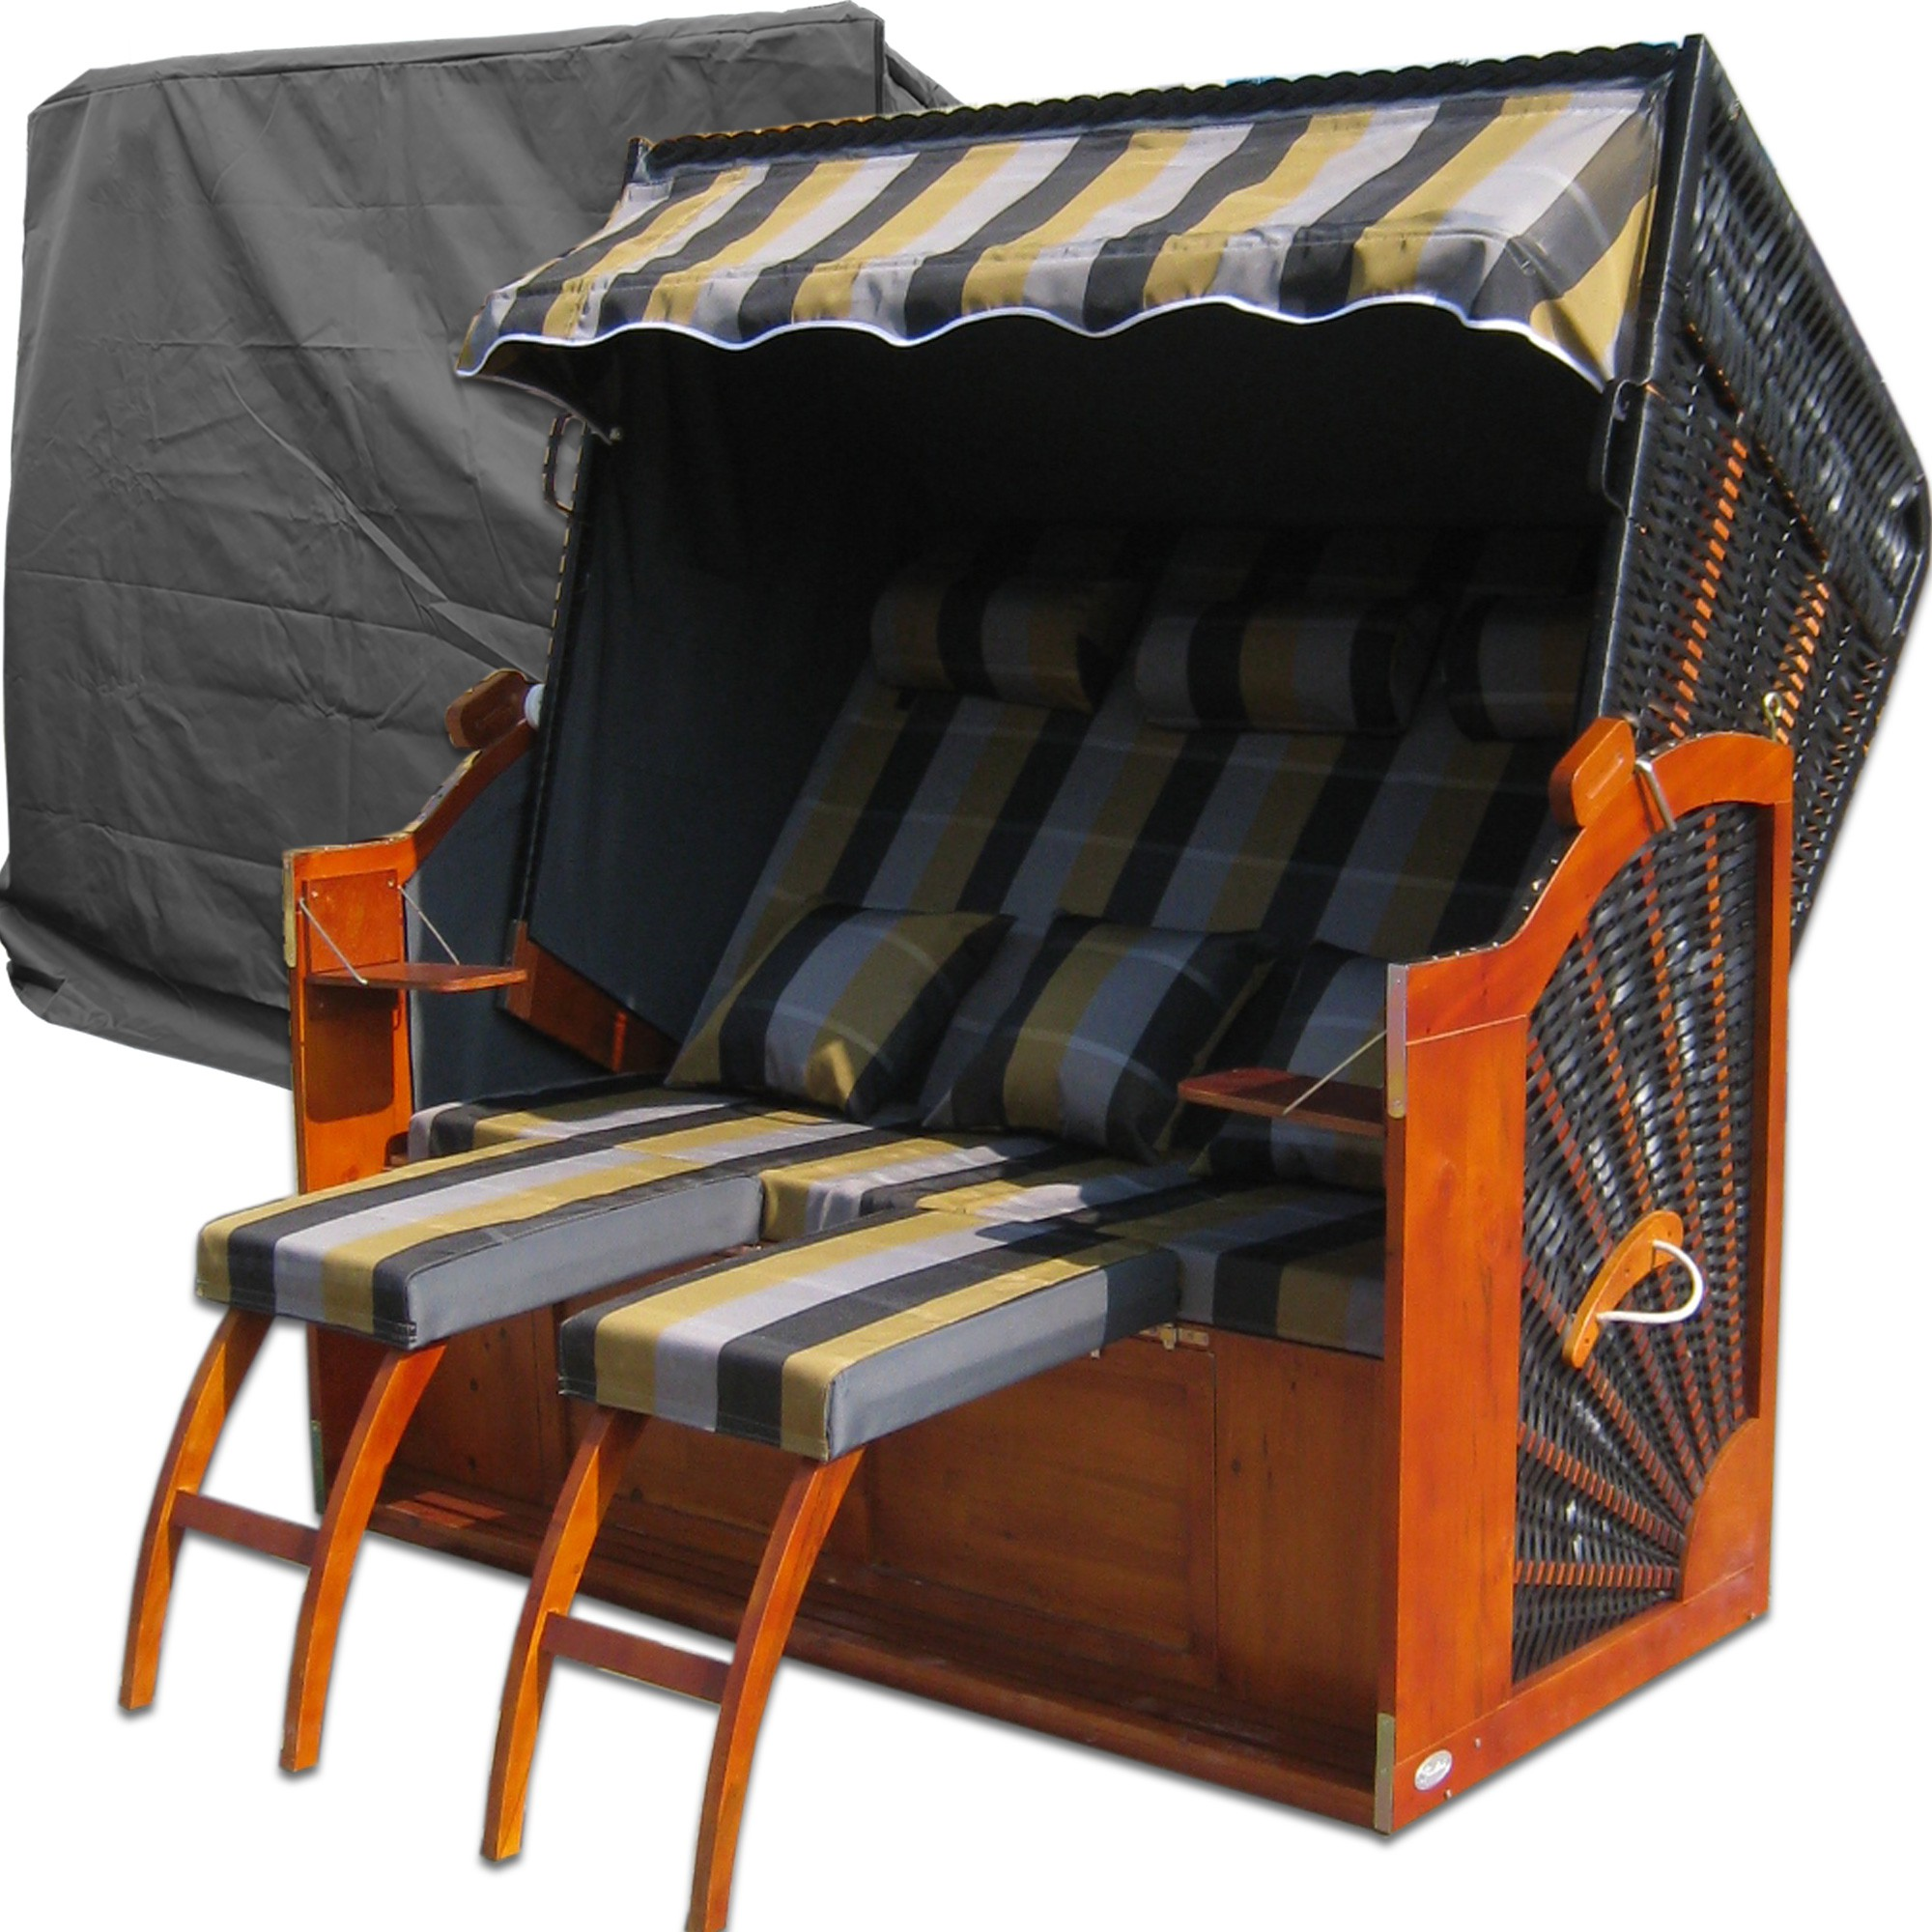 strandkorb gr mitz g nstig strandkorb xxl kaufen. Black Bedroom Furniture Sets. Home Design Ideas